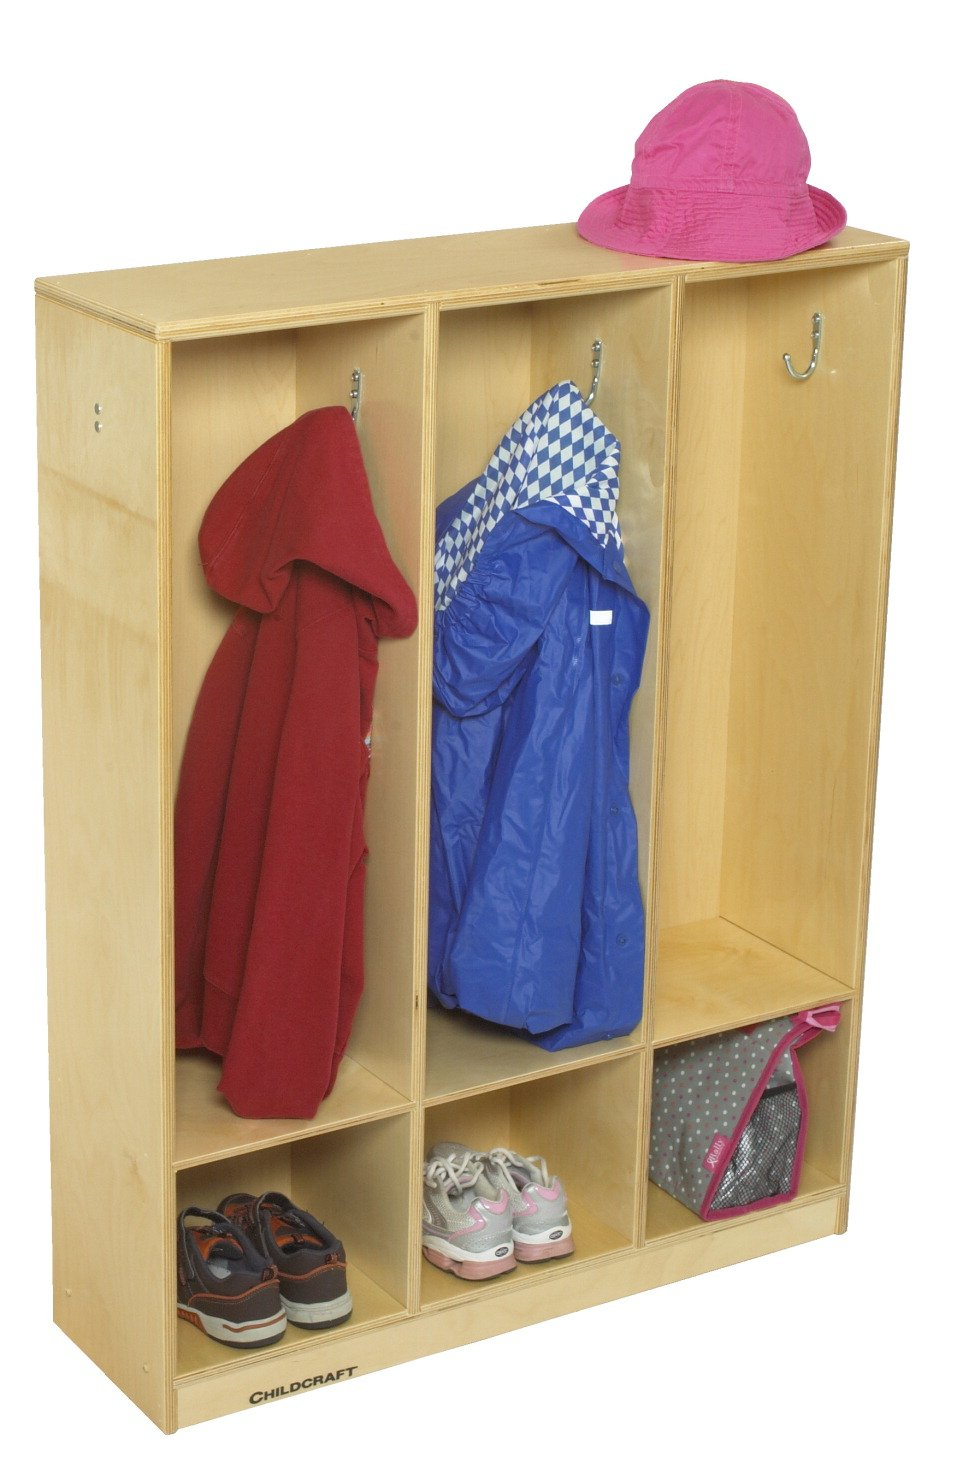 Childcraft 1464168 3-Section Coat Locker, 42'' Height, 9.63'' Width, 32.5'' Length, Natural Wood